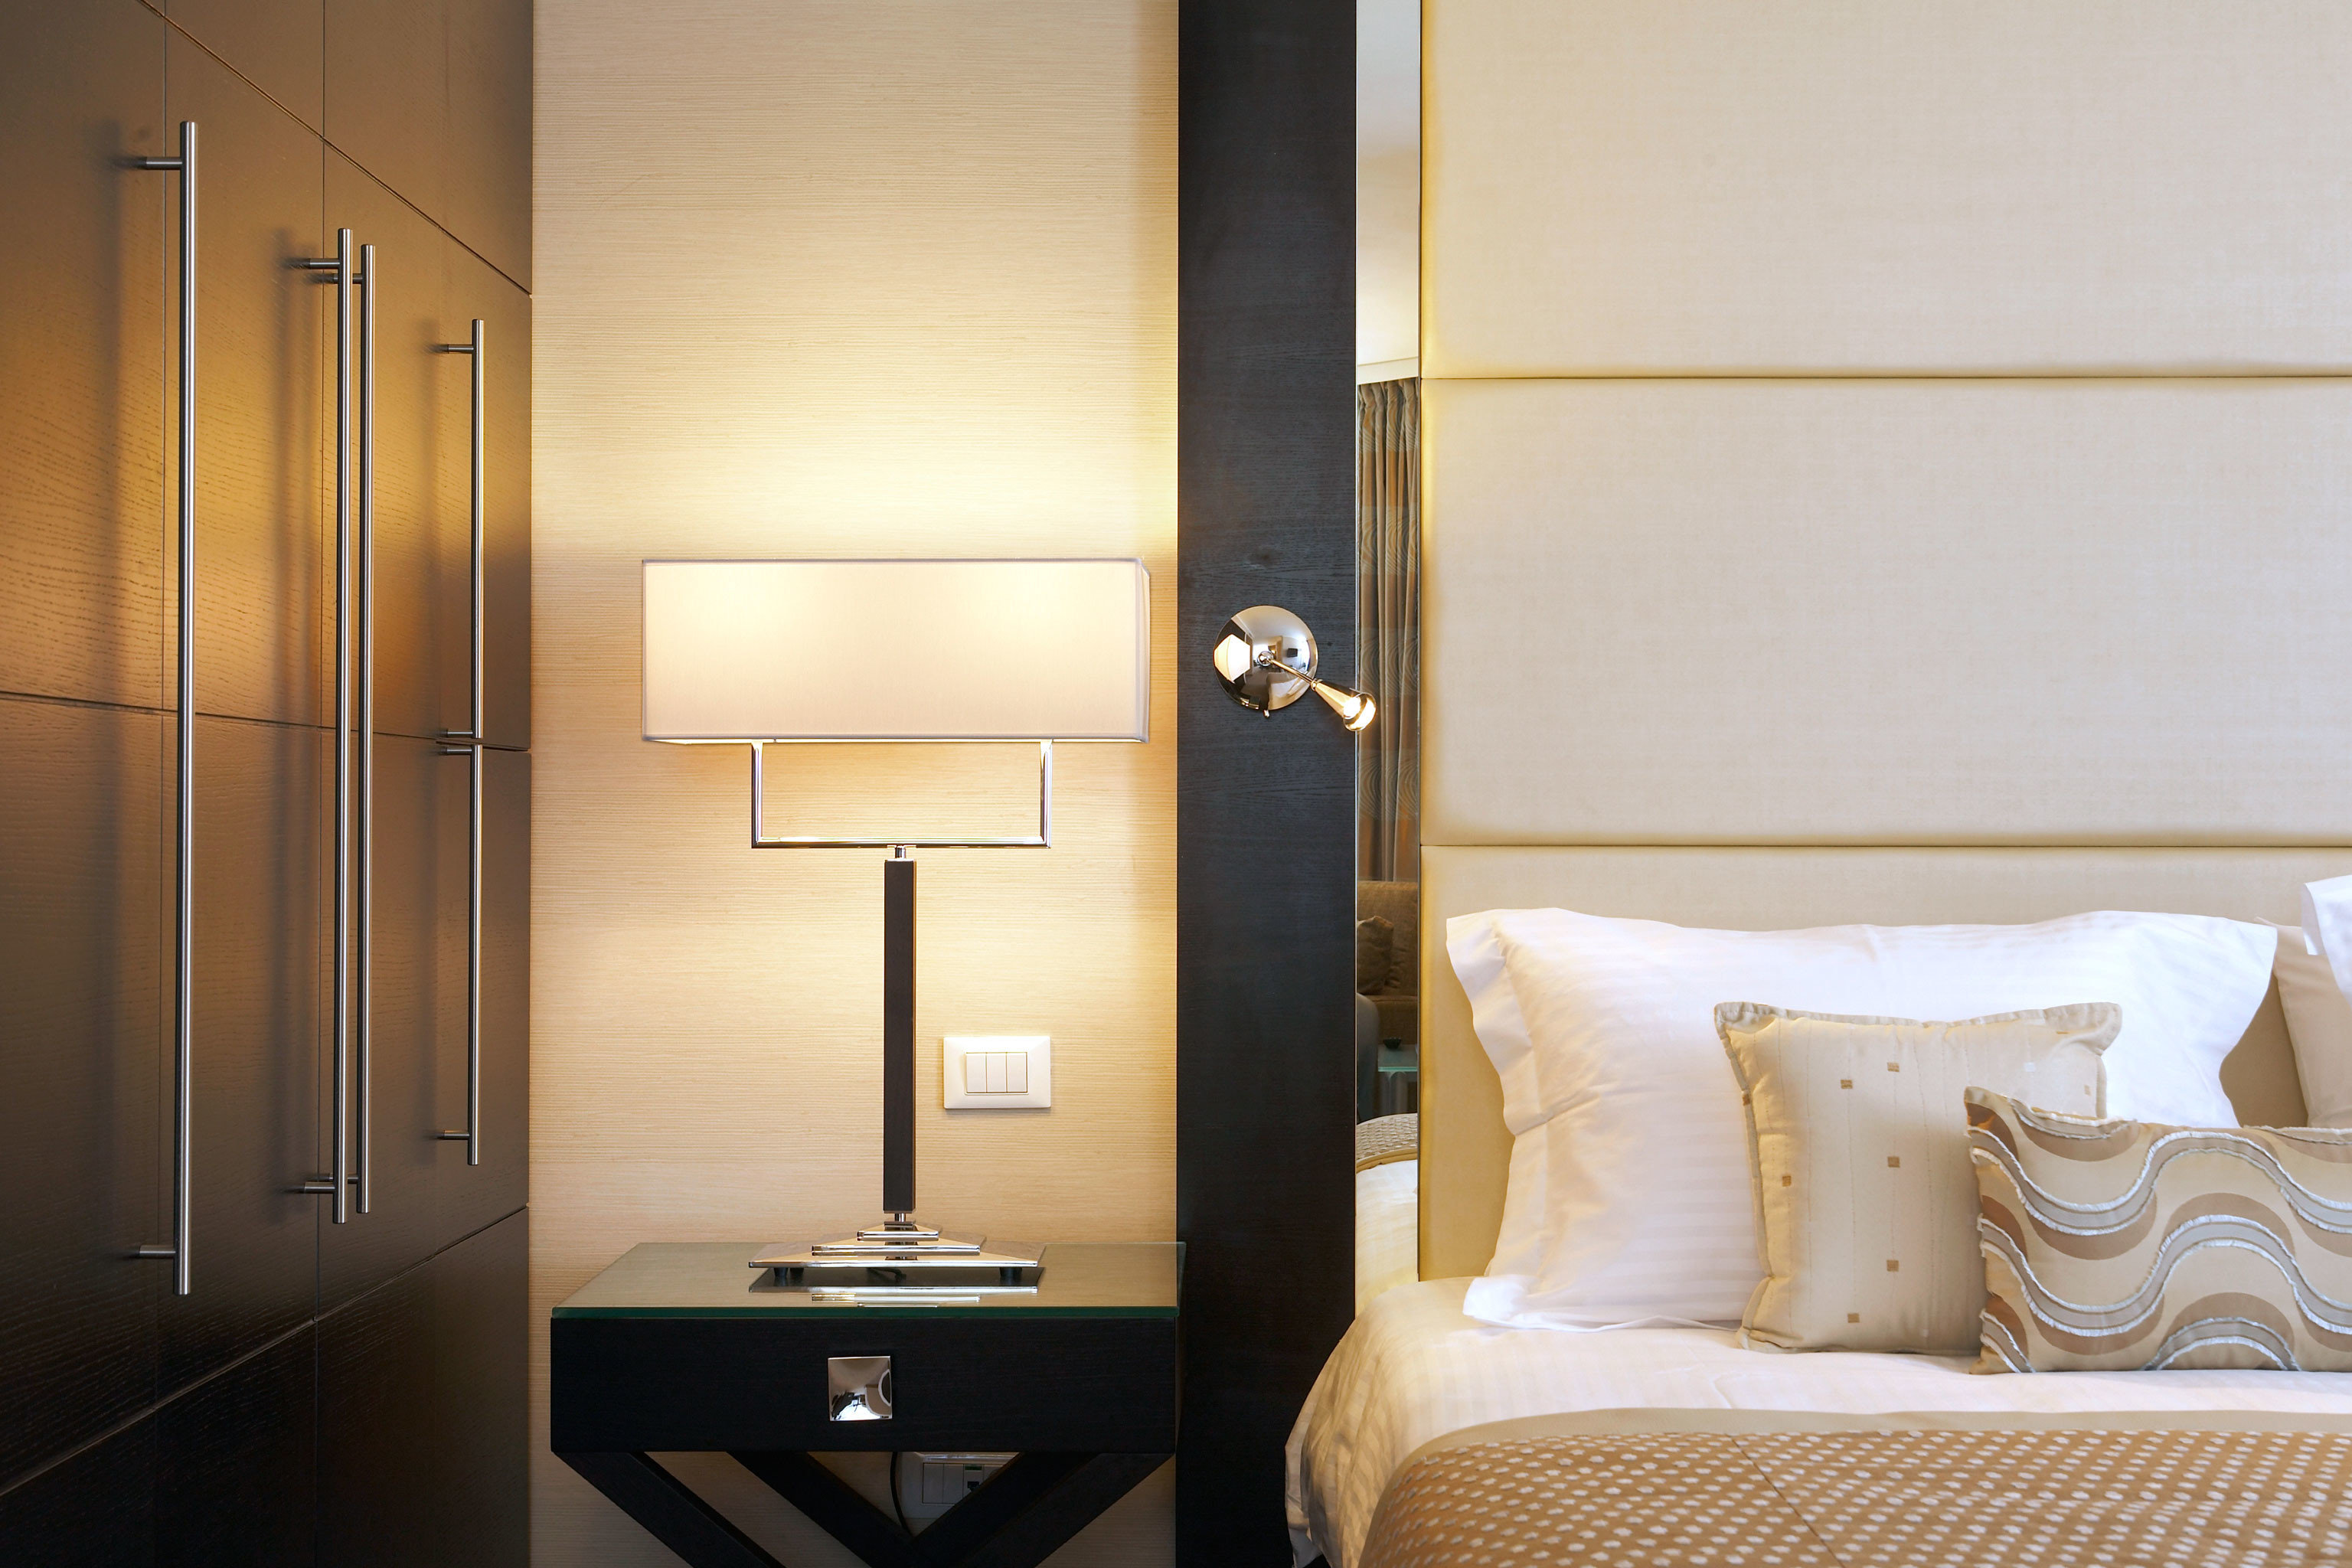 Bedroom Luxury Modern Romance Romantic property Suite lighting